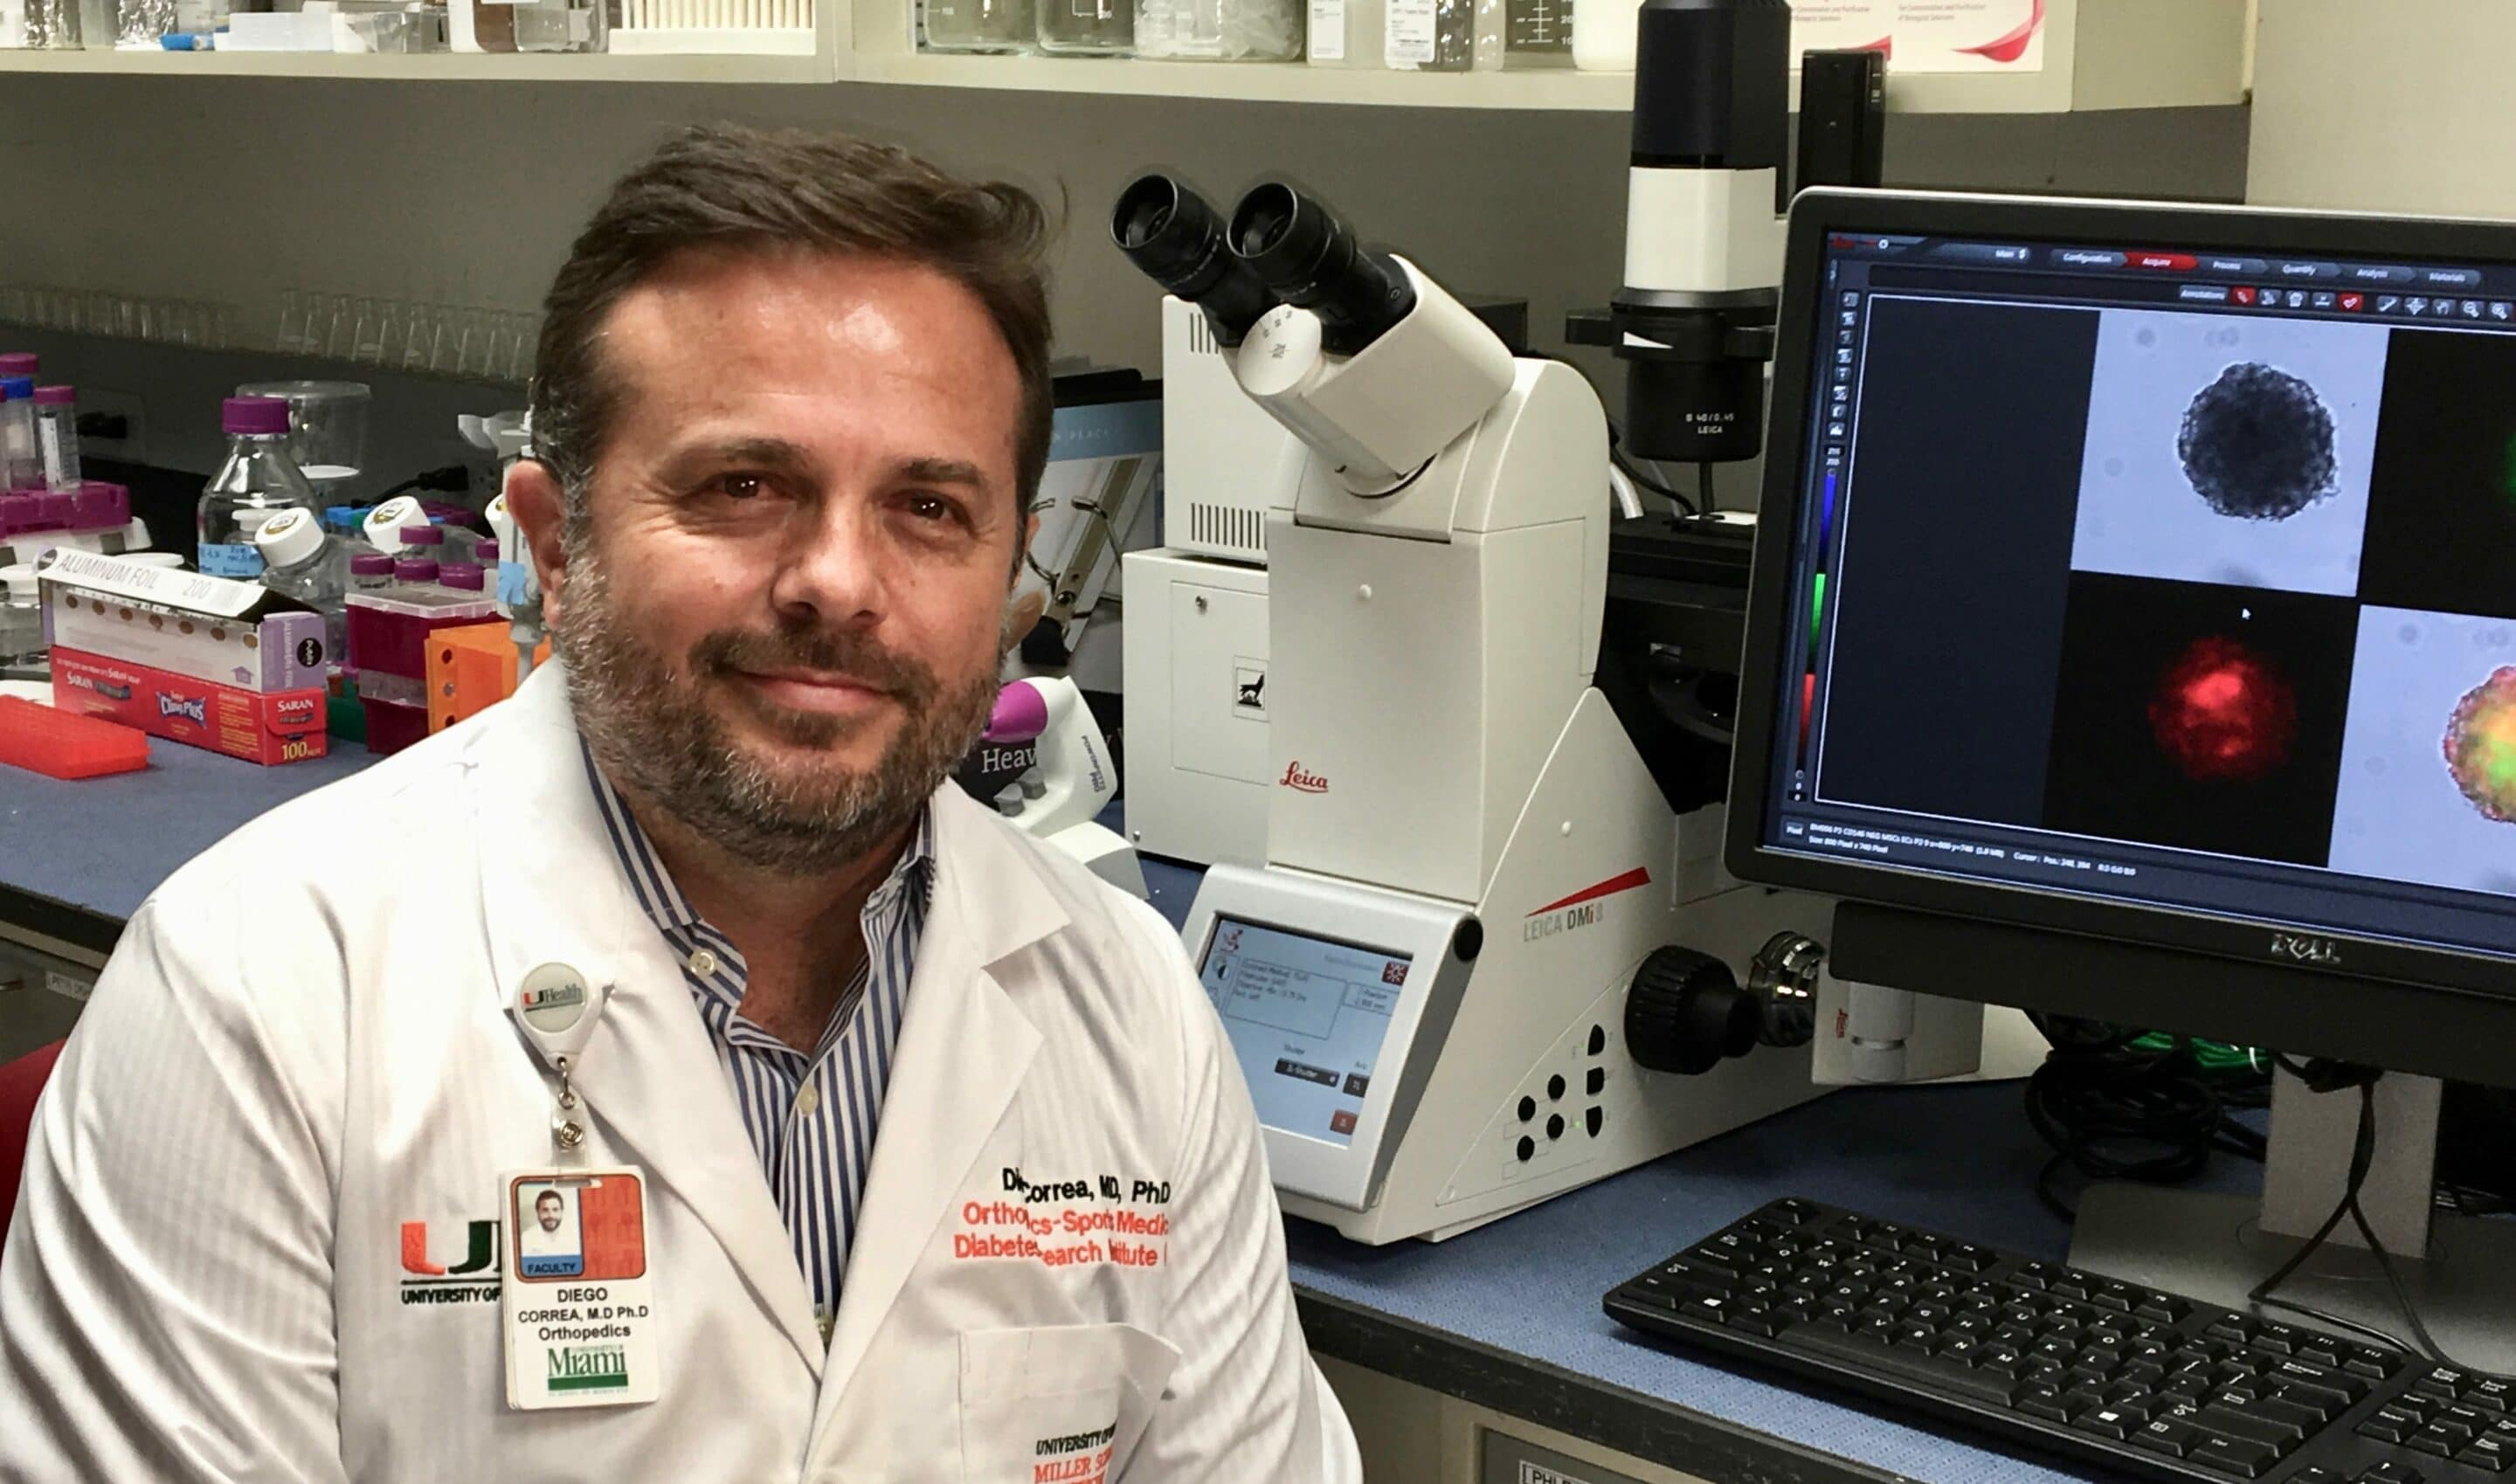 Diego Correa: Stem Cell Therapy Scientist